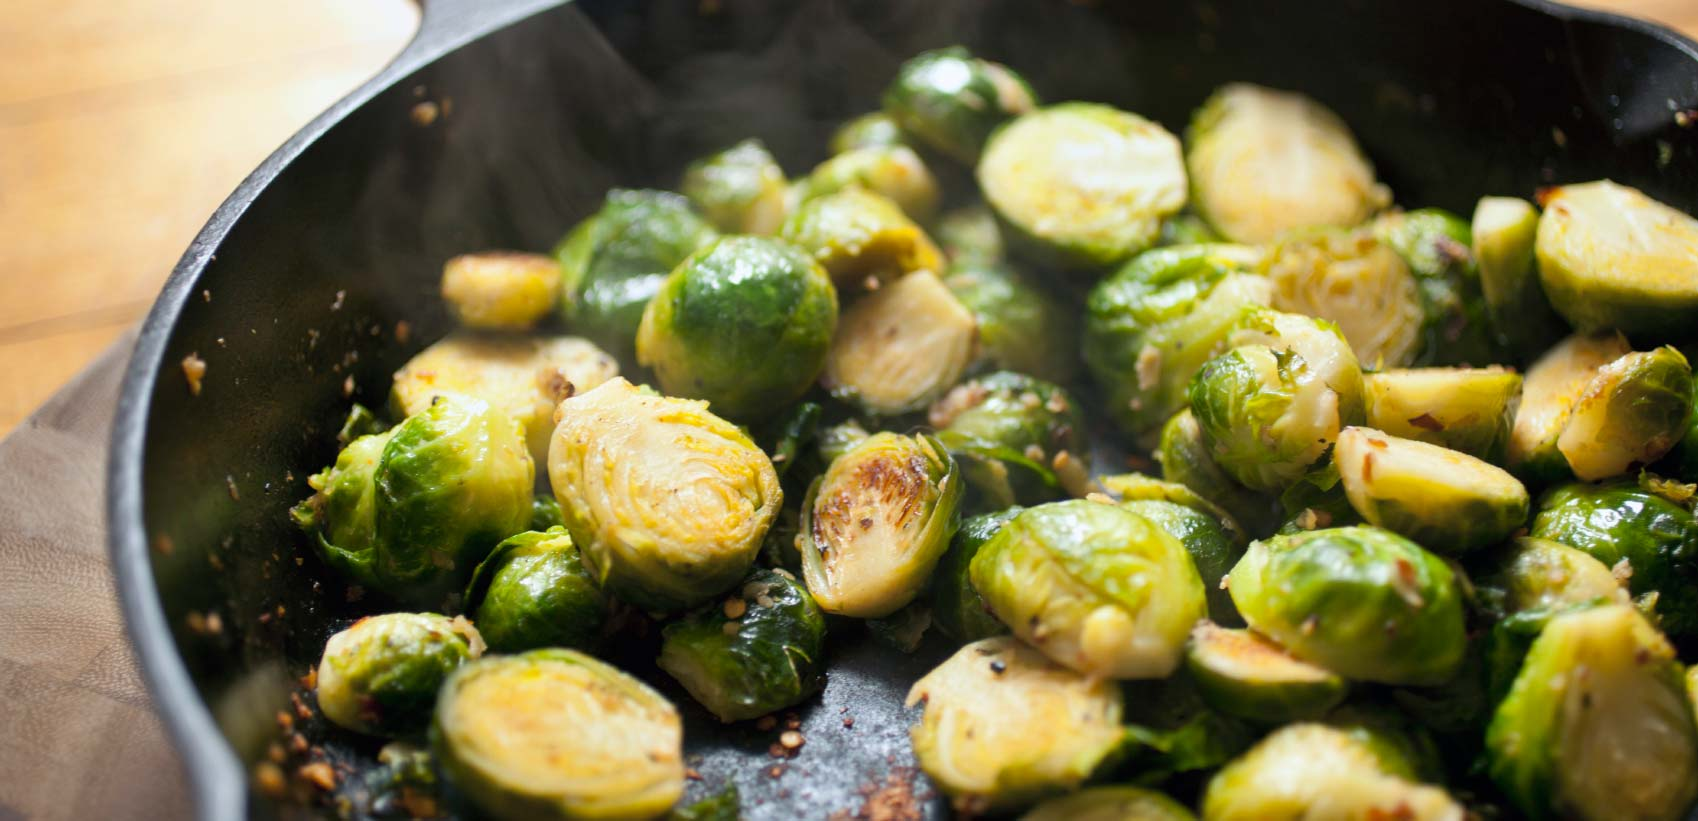 Benefits-of-Brussels-Sprouts-easy-to-prepare